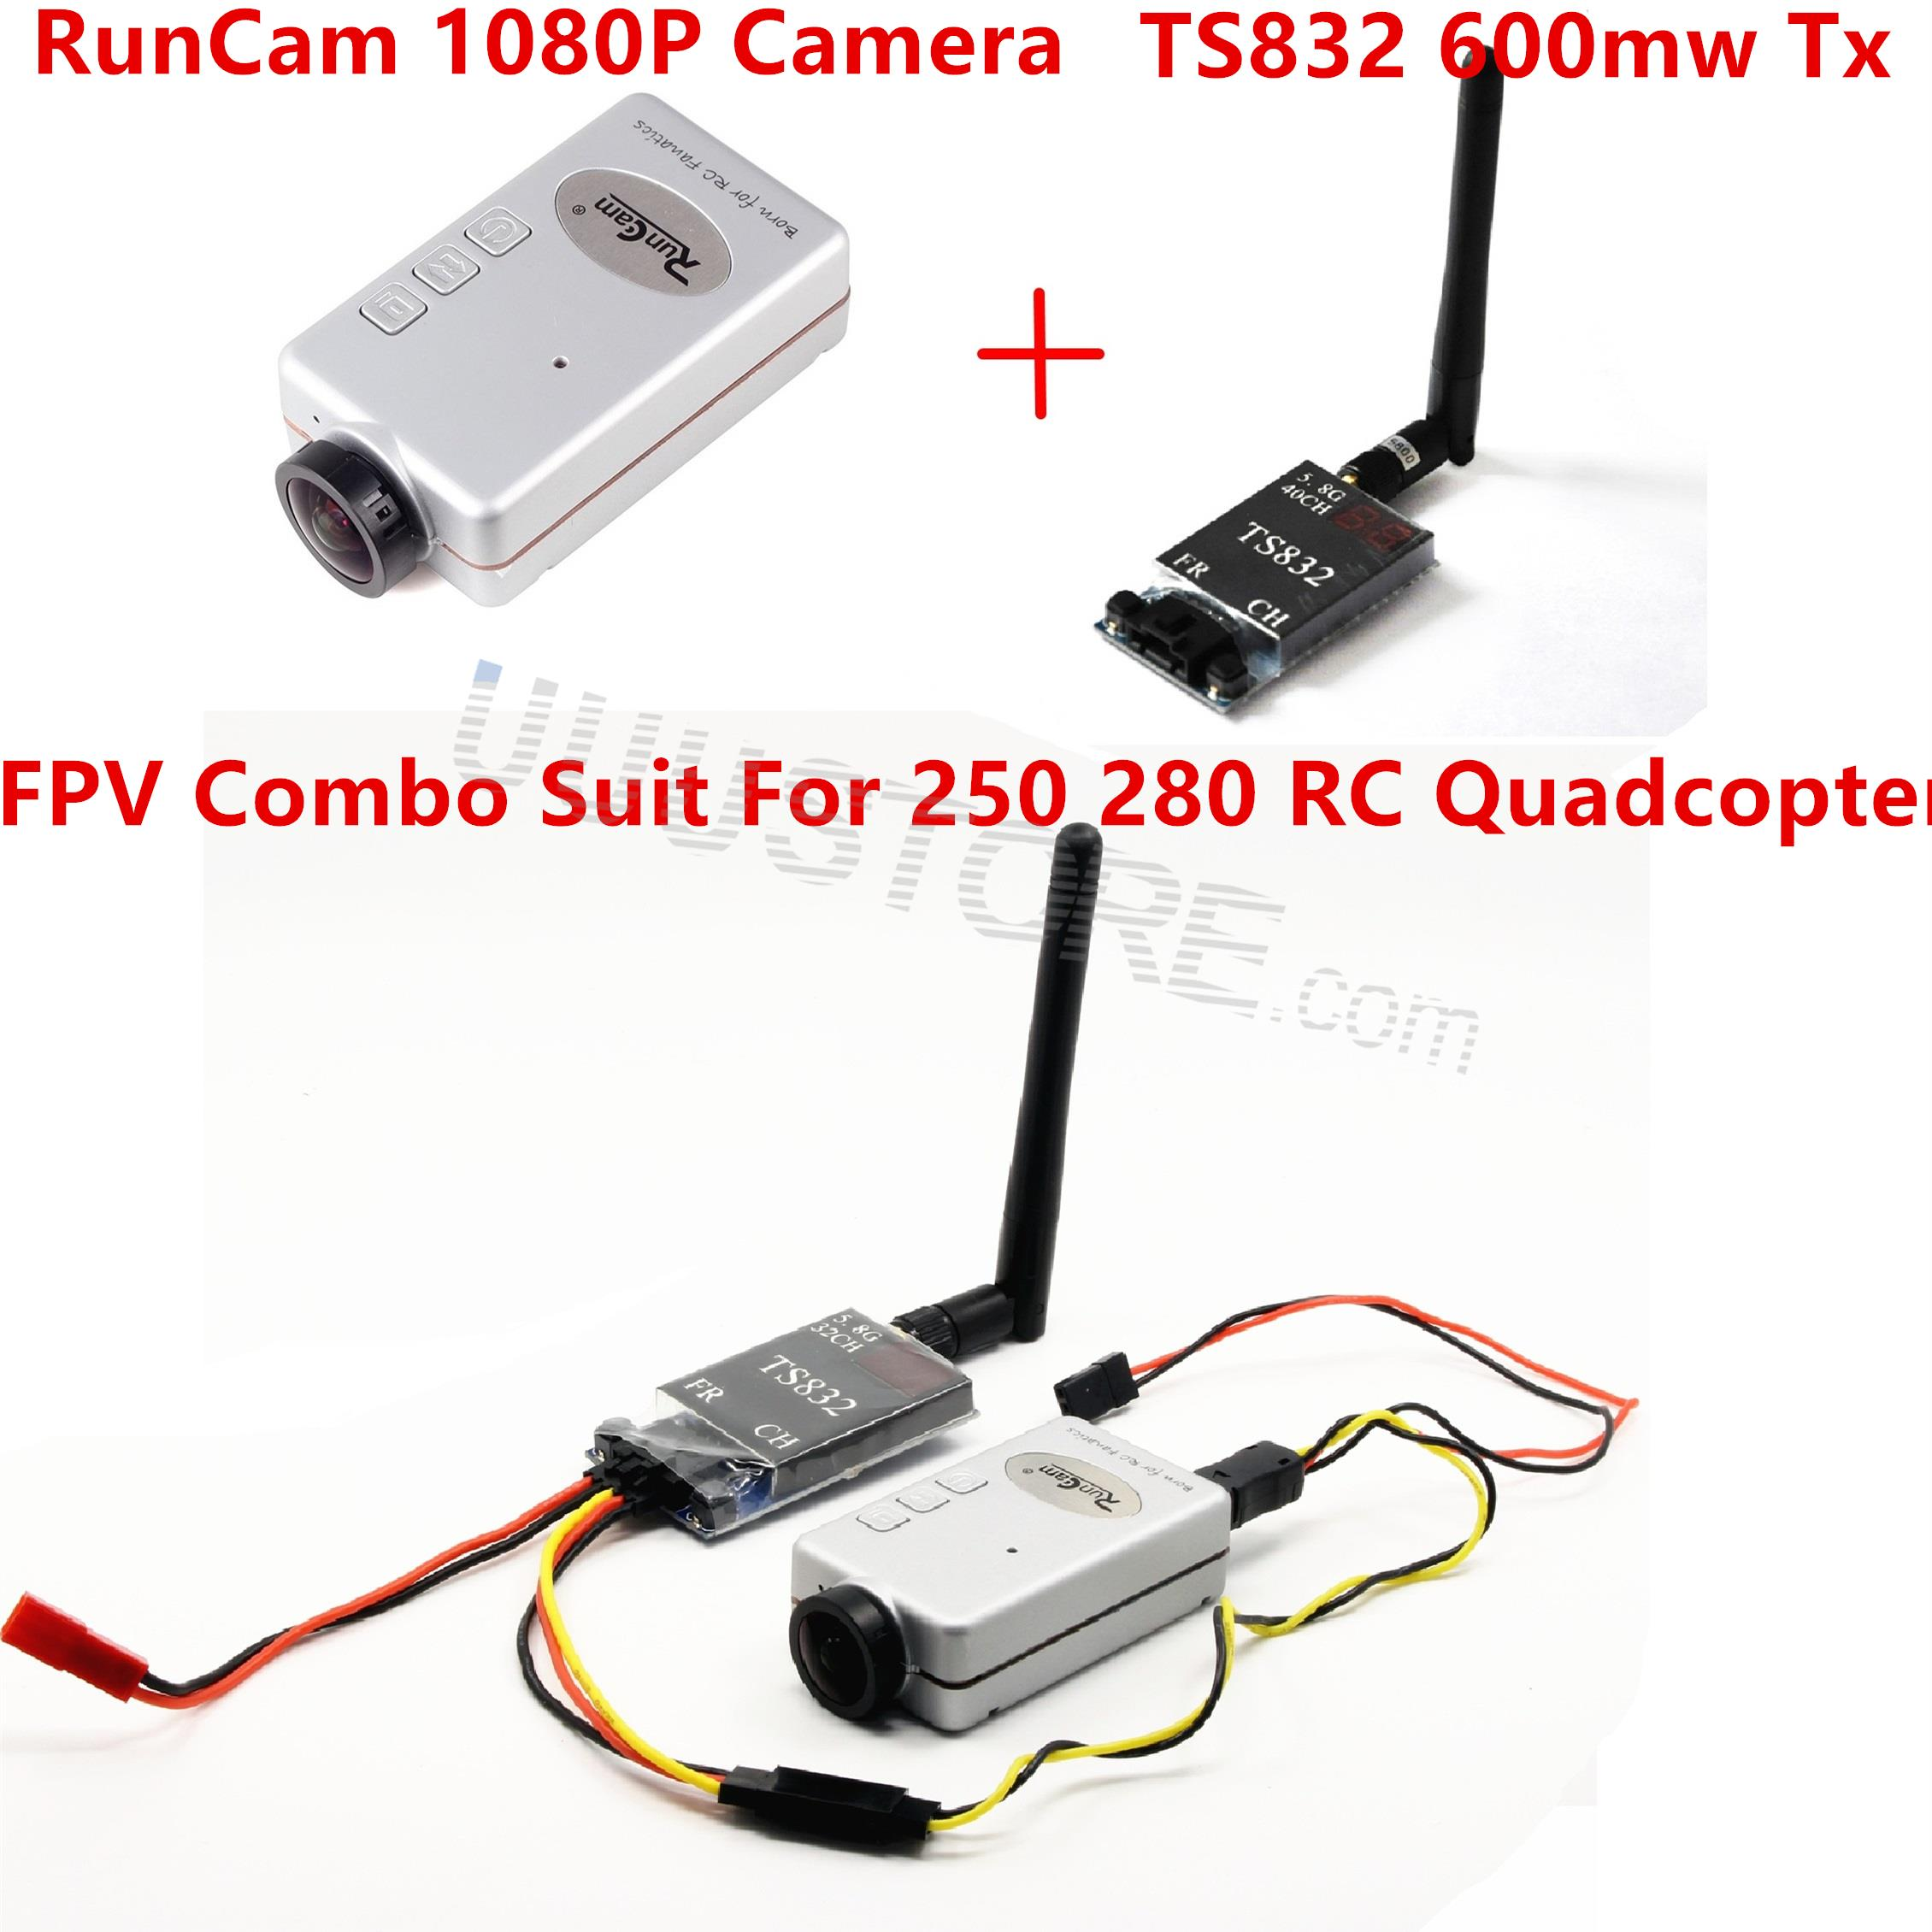 Mini DVR ile FPV Combo RunCam Yarış Için 1080 P TS832 Video Verici Drone QAV250 RC Quadcopter